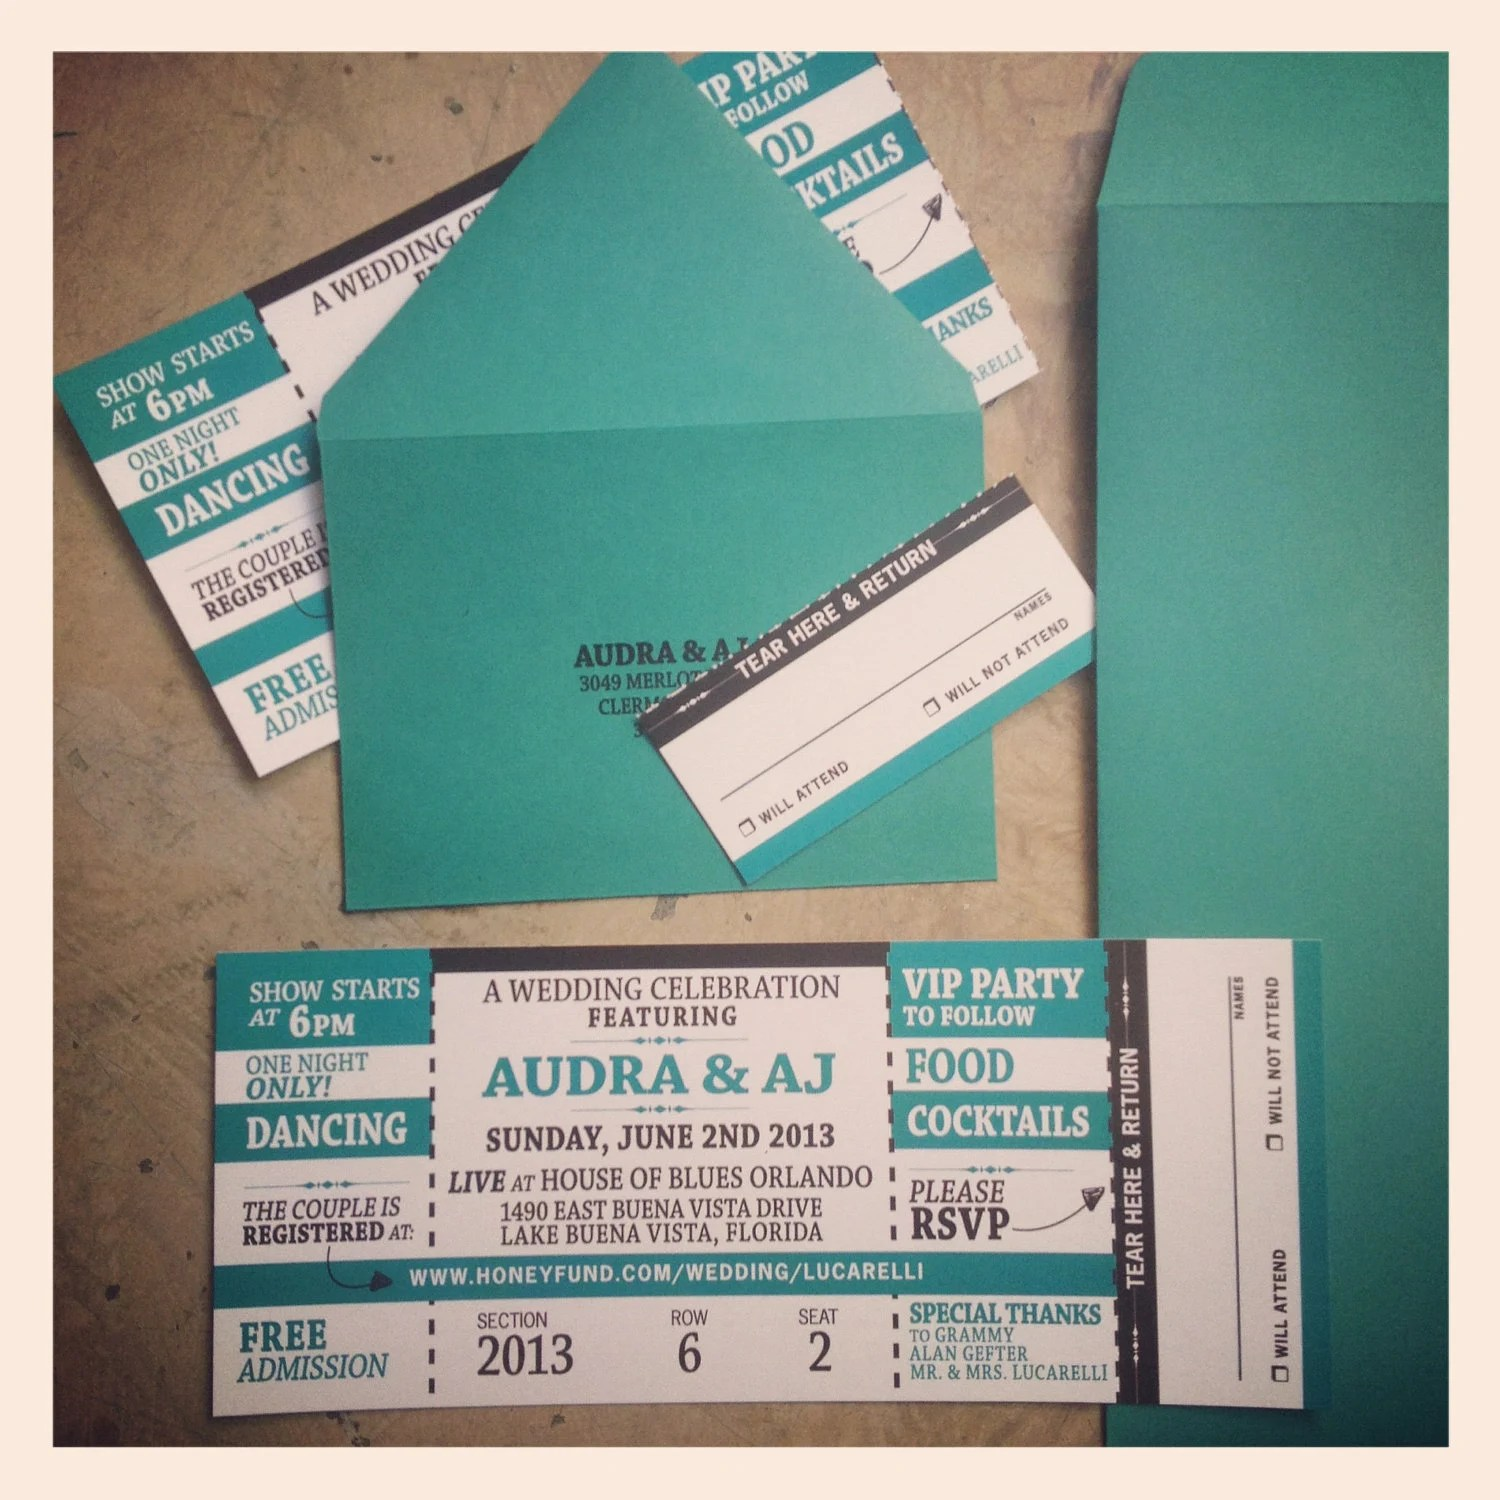 Concert Ticket Invitation with RSVP tearoff by papercakedesigns